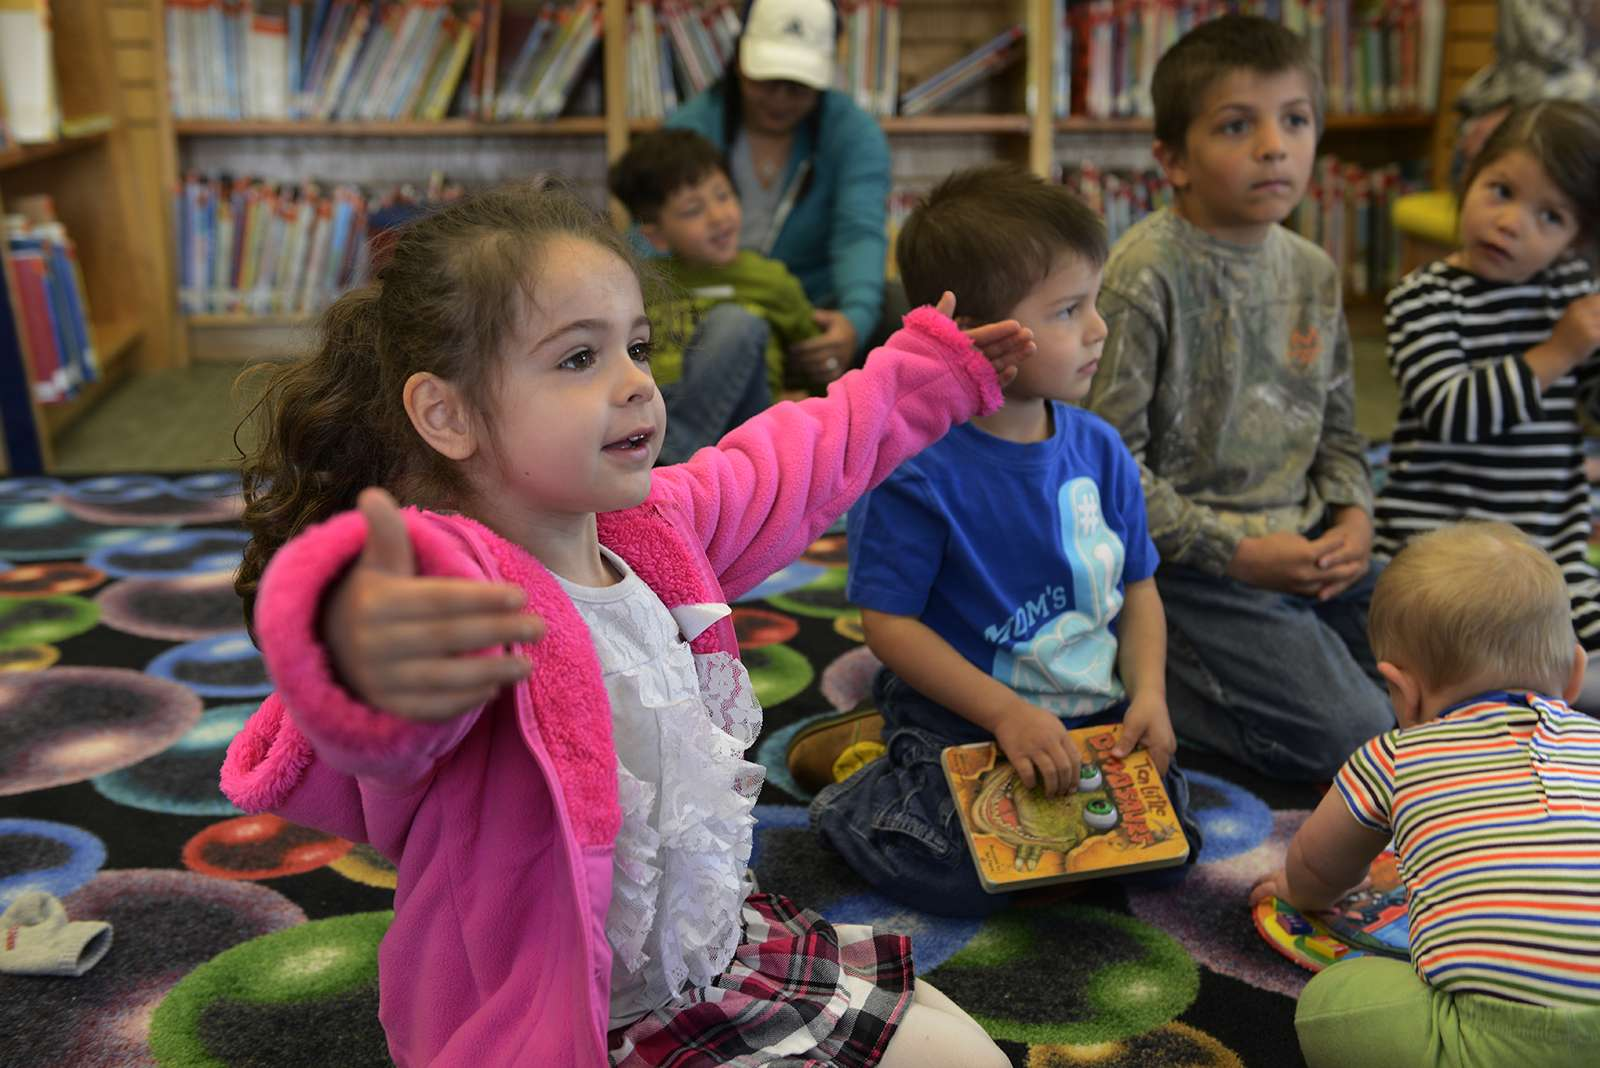 Young girl opens her arms wide during a sign language class